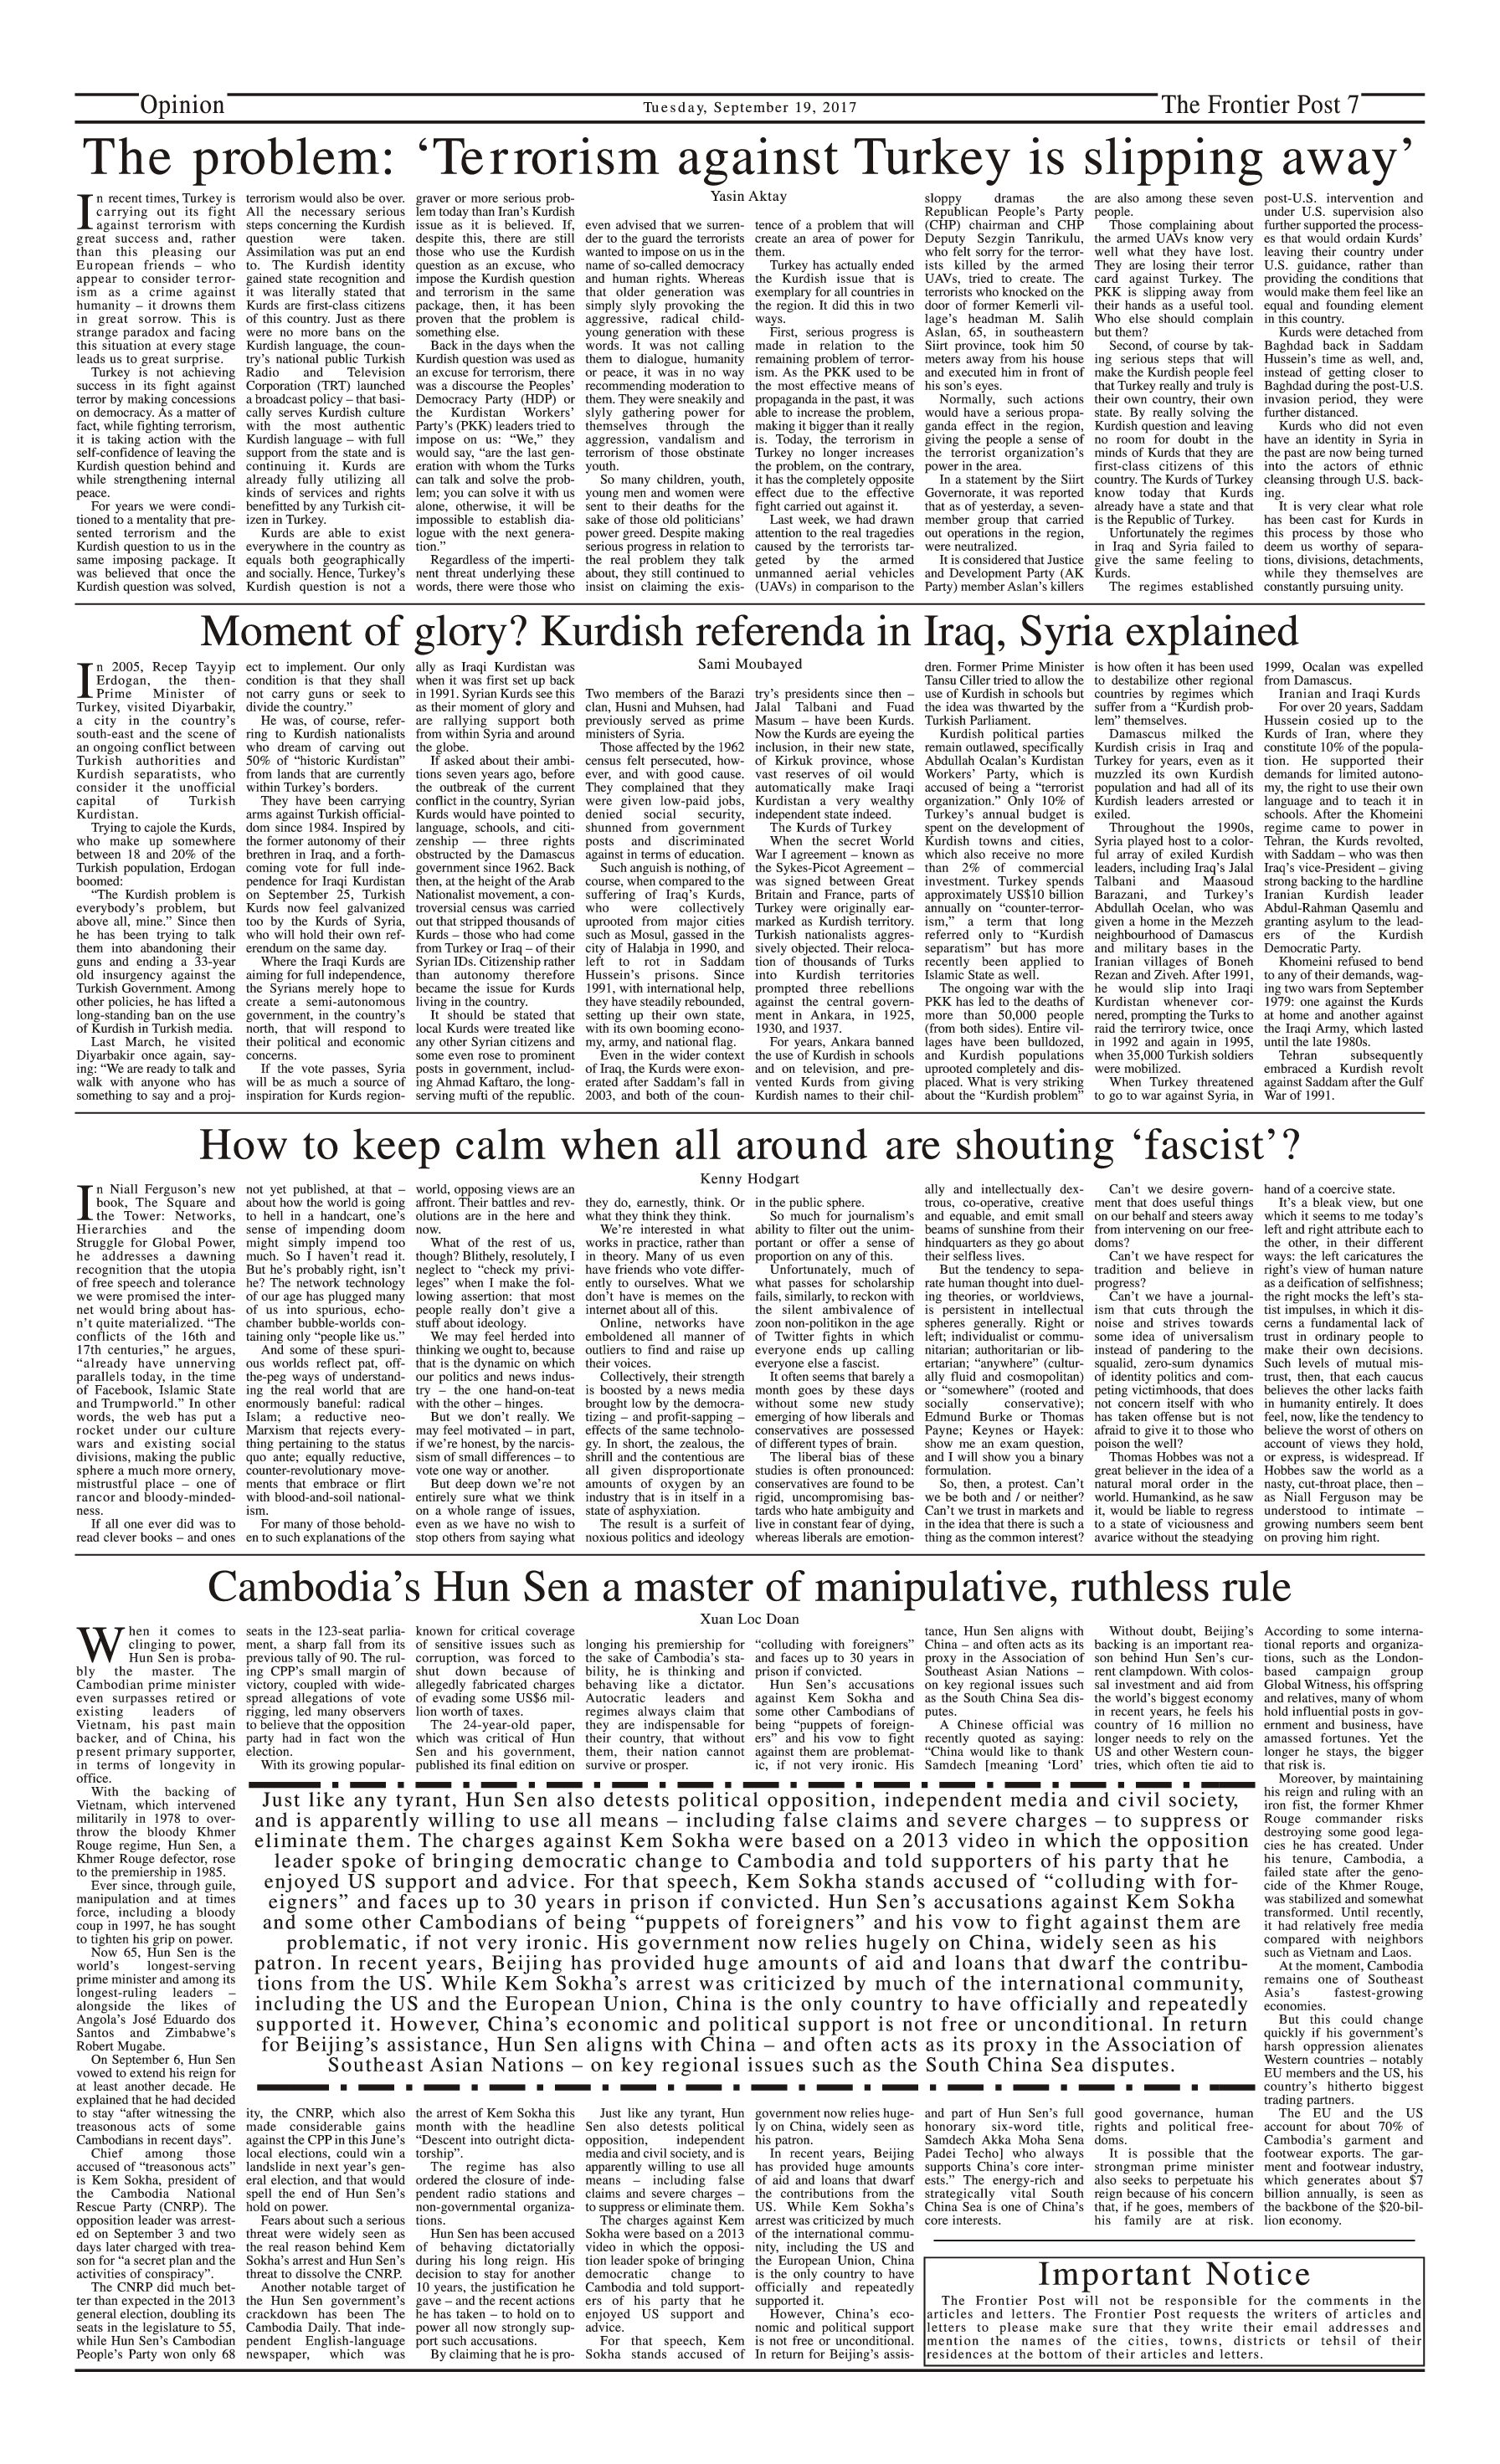 Opinion Page 19-09